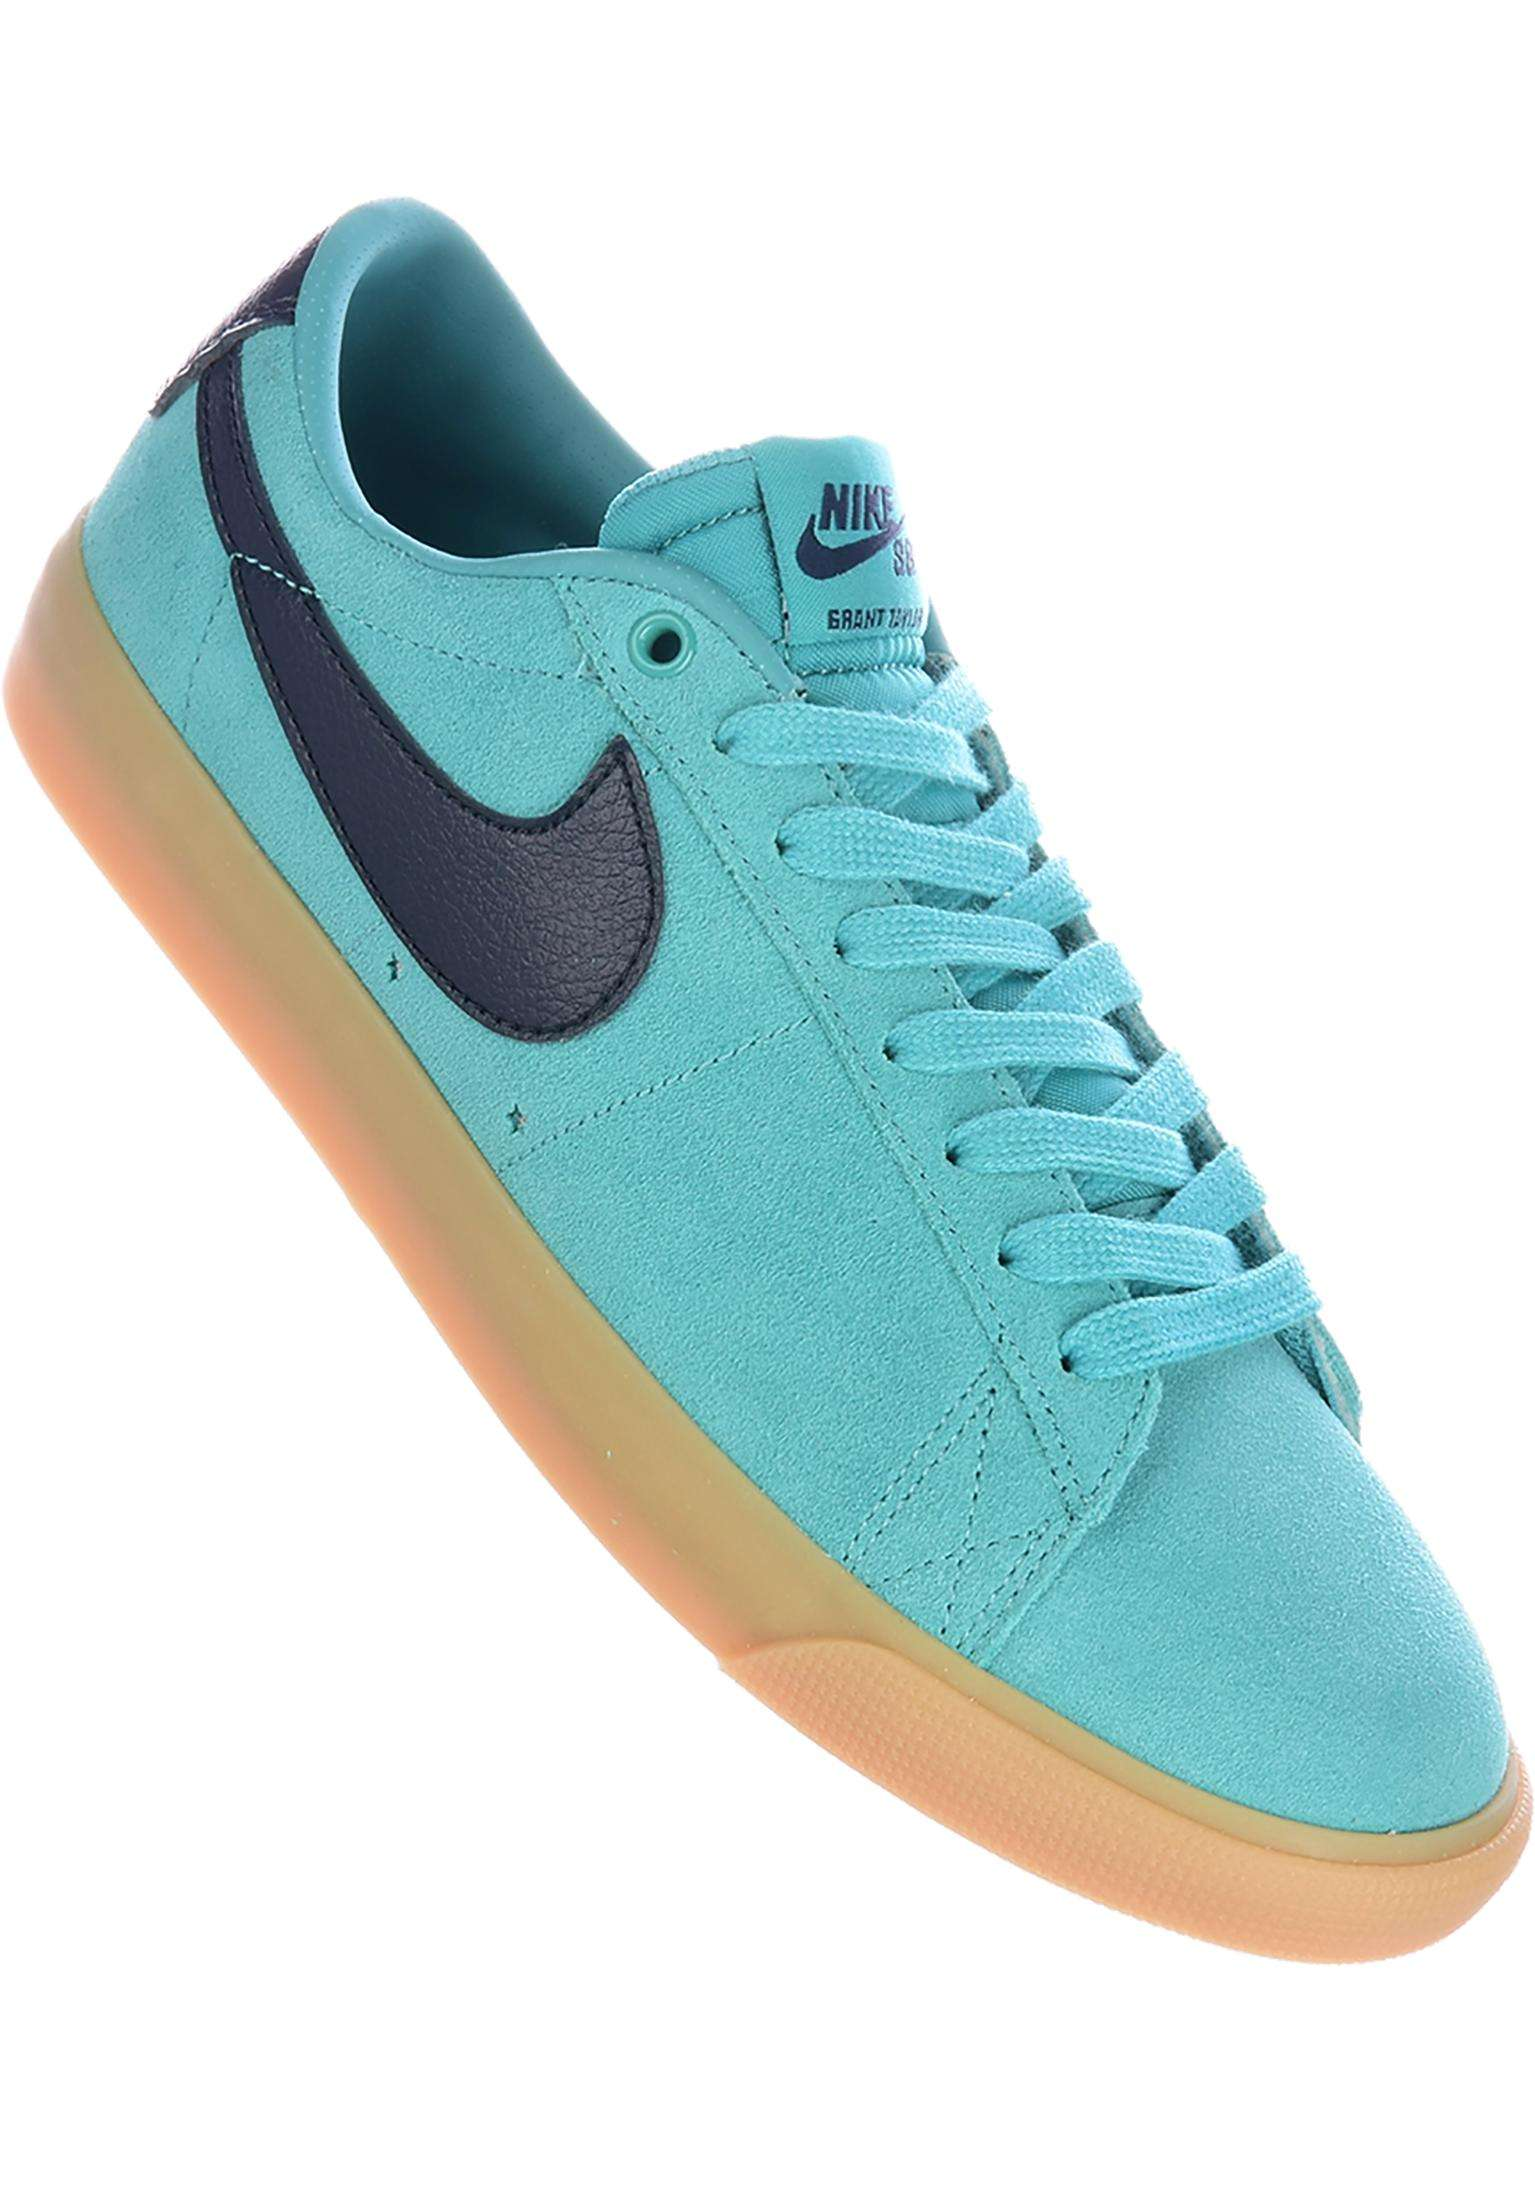 ef6fa0bc Blazer Low GT Nike SB All Shoes in cabana-obsidian for Men | Titus